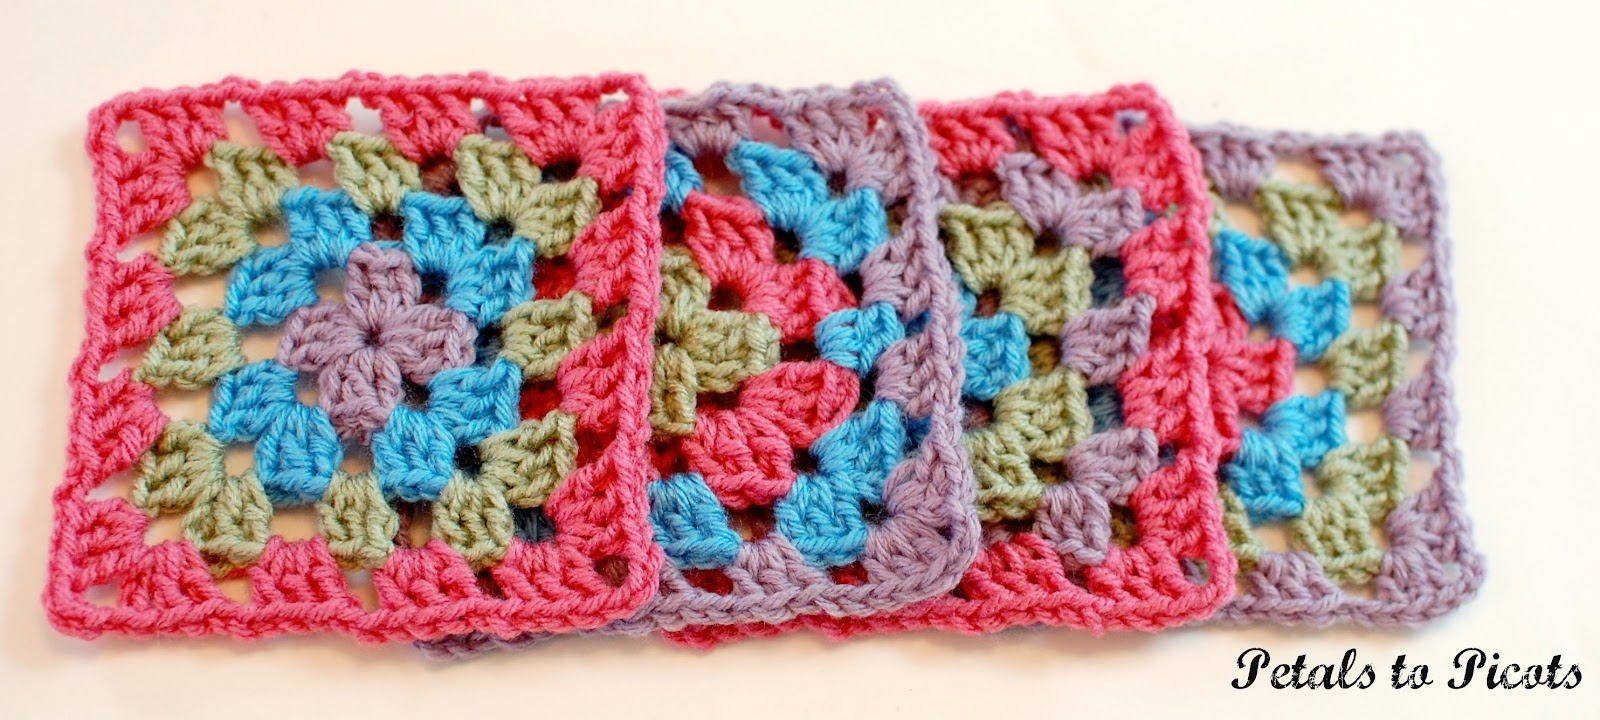 Free Crochet Granny Square Patterns Best Design